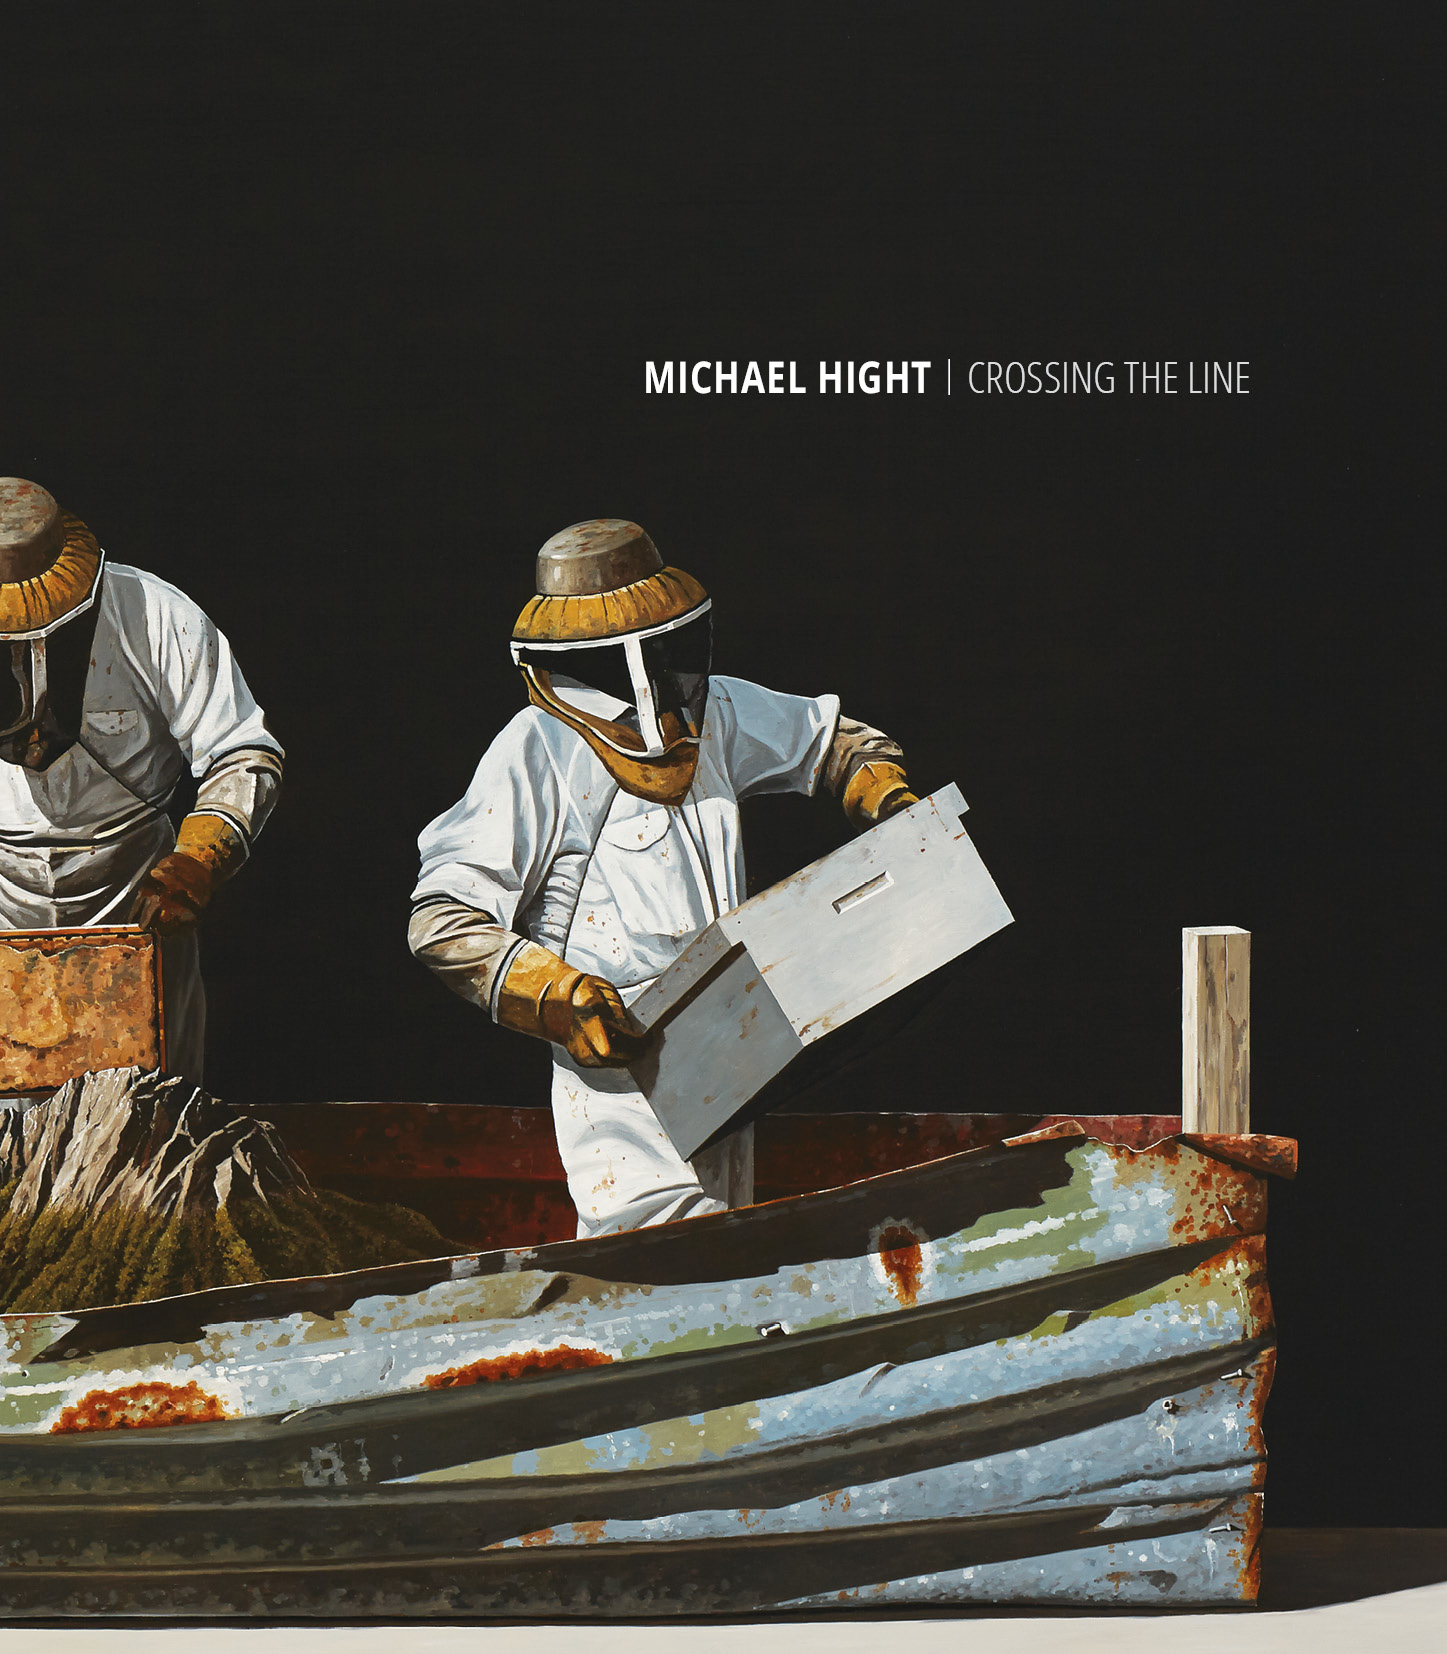 Michael Hight: Crossing the Line